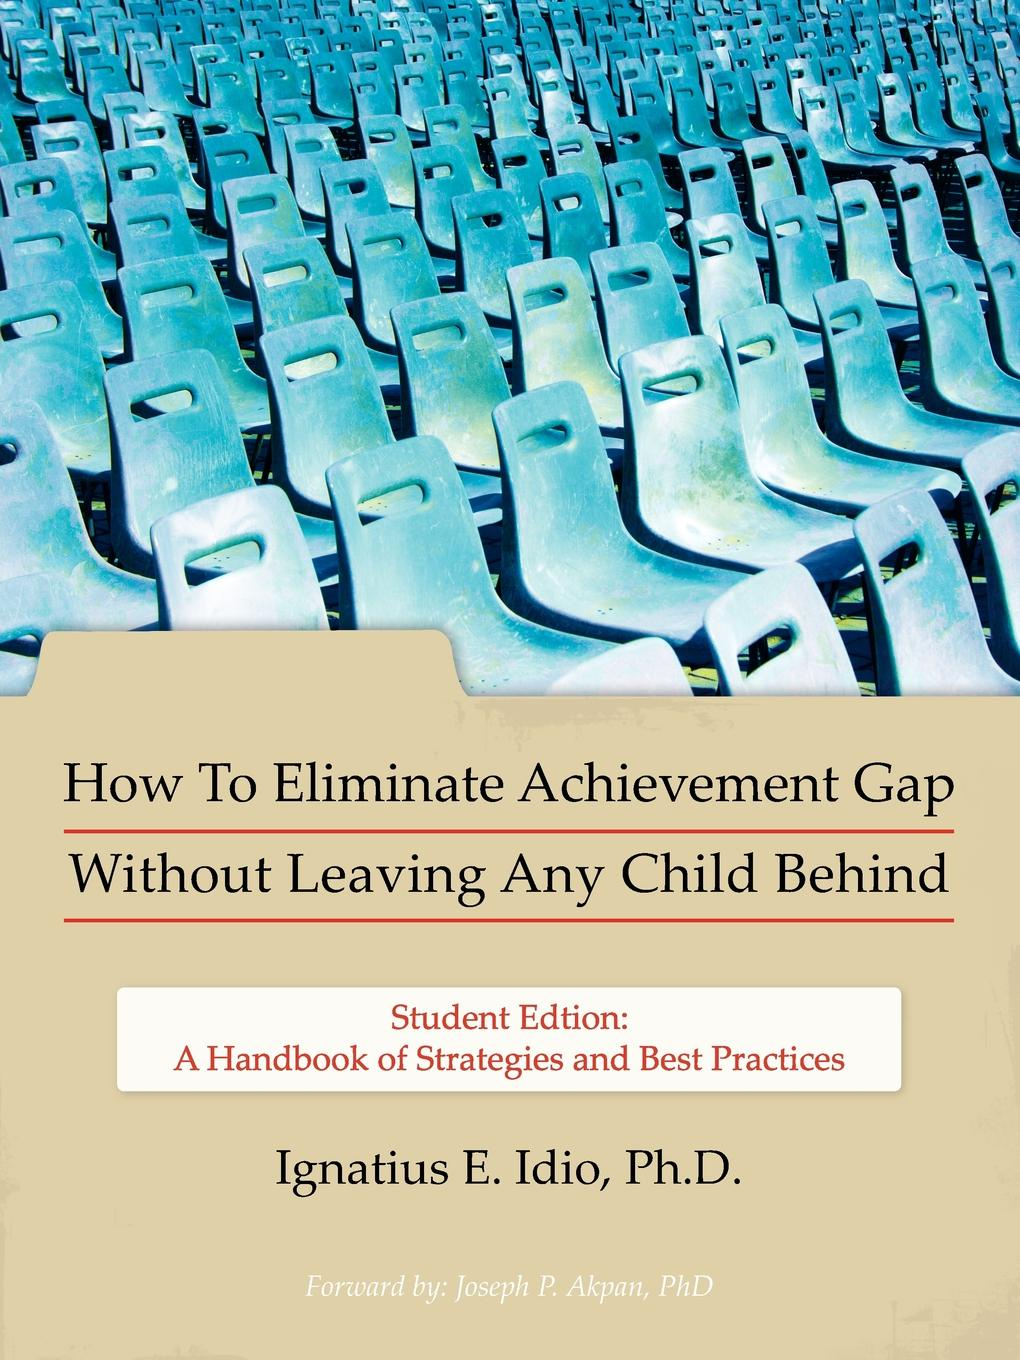 Ignatius E. Idio Ph.D. How To Eliminate Achievement Gap Without Leaving Any Child Behind. Student Edition: A Handbook of Strategies and Best Practices rebecca jackson williams the complete learning disabilities handbook ready to use strategies and activities for teaching students with learning disabilities isbn 9781118937686